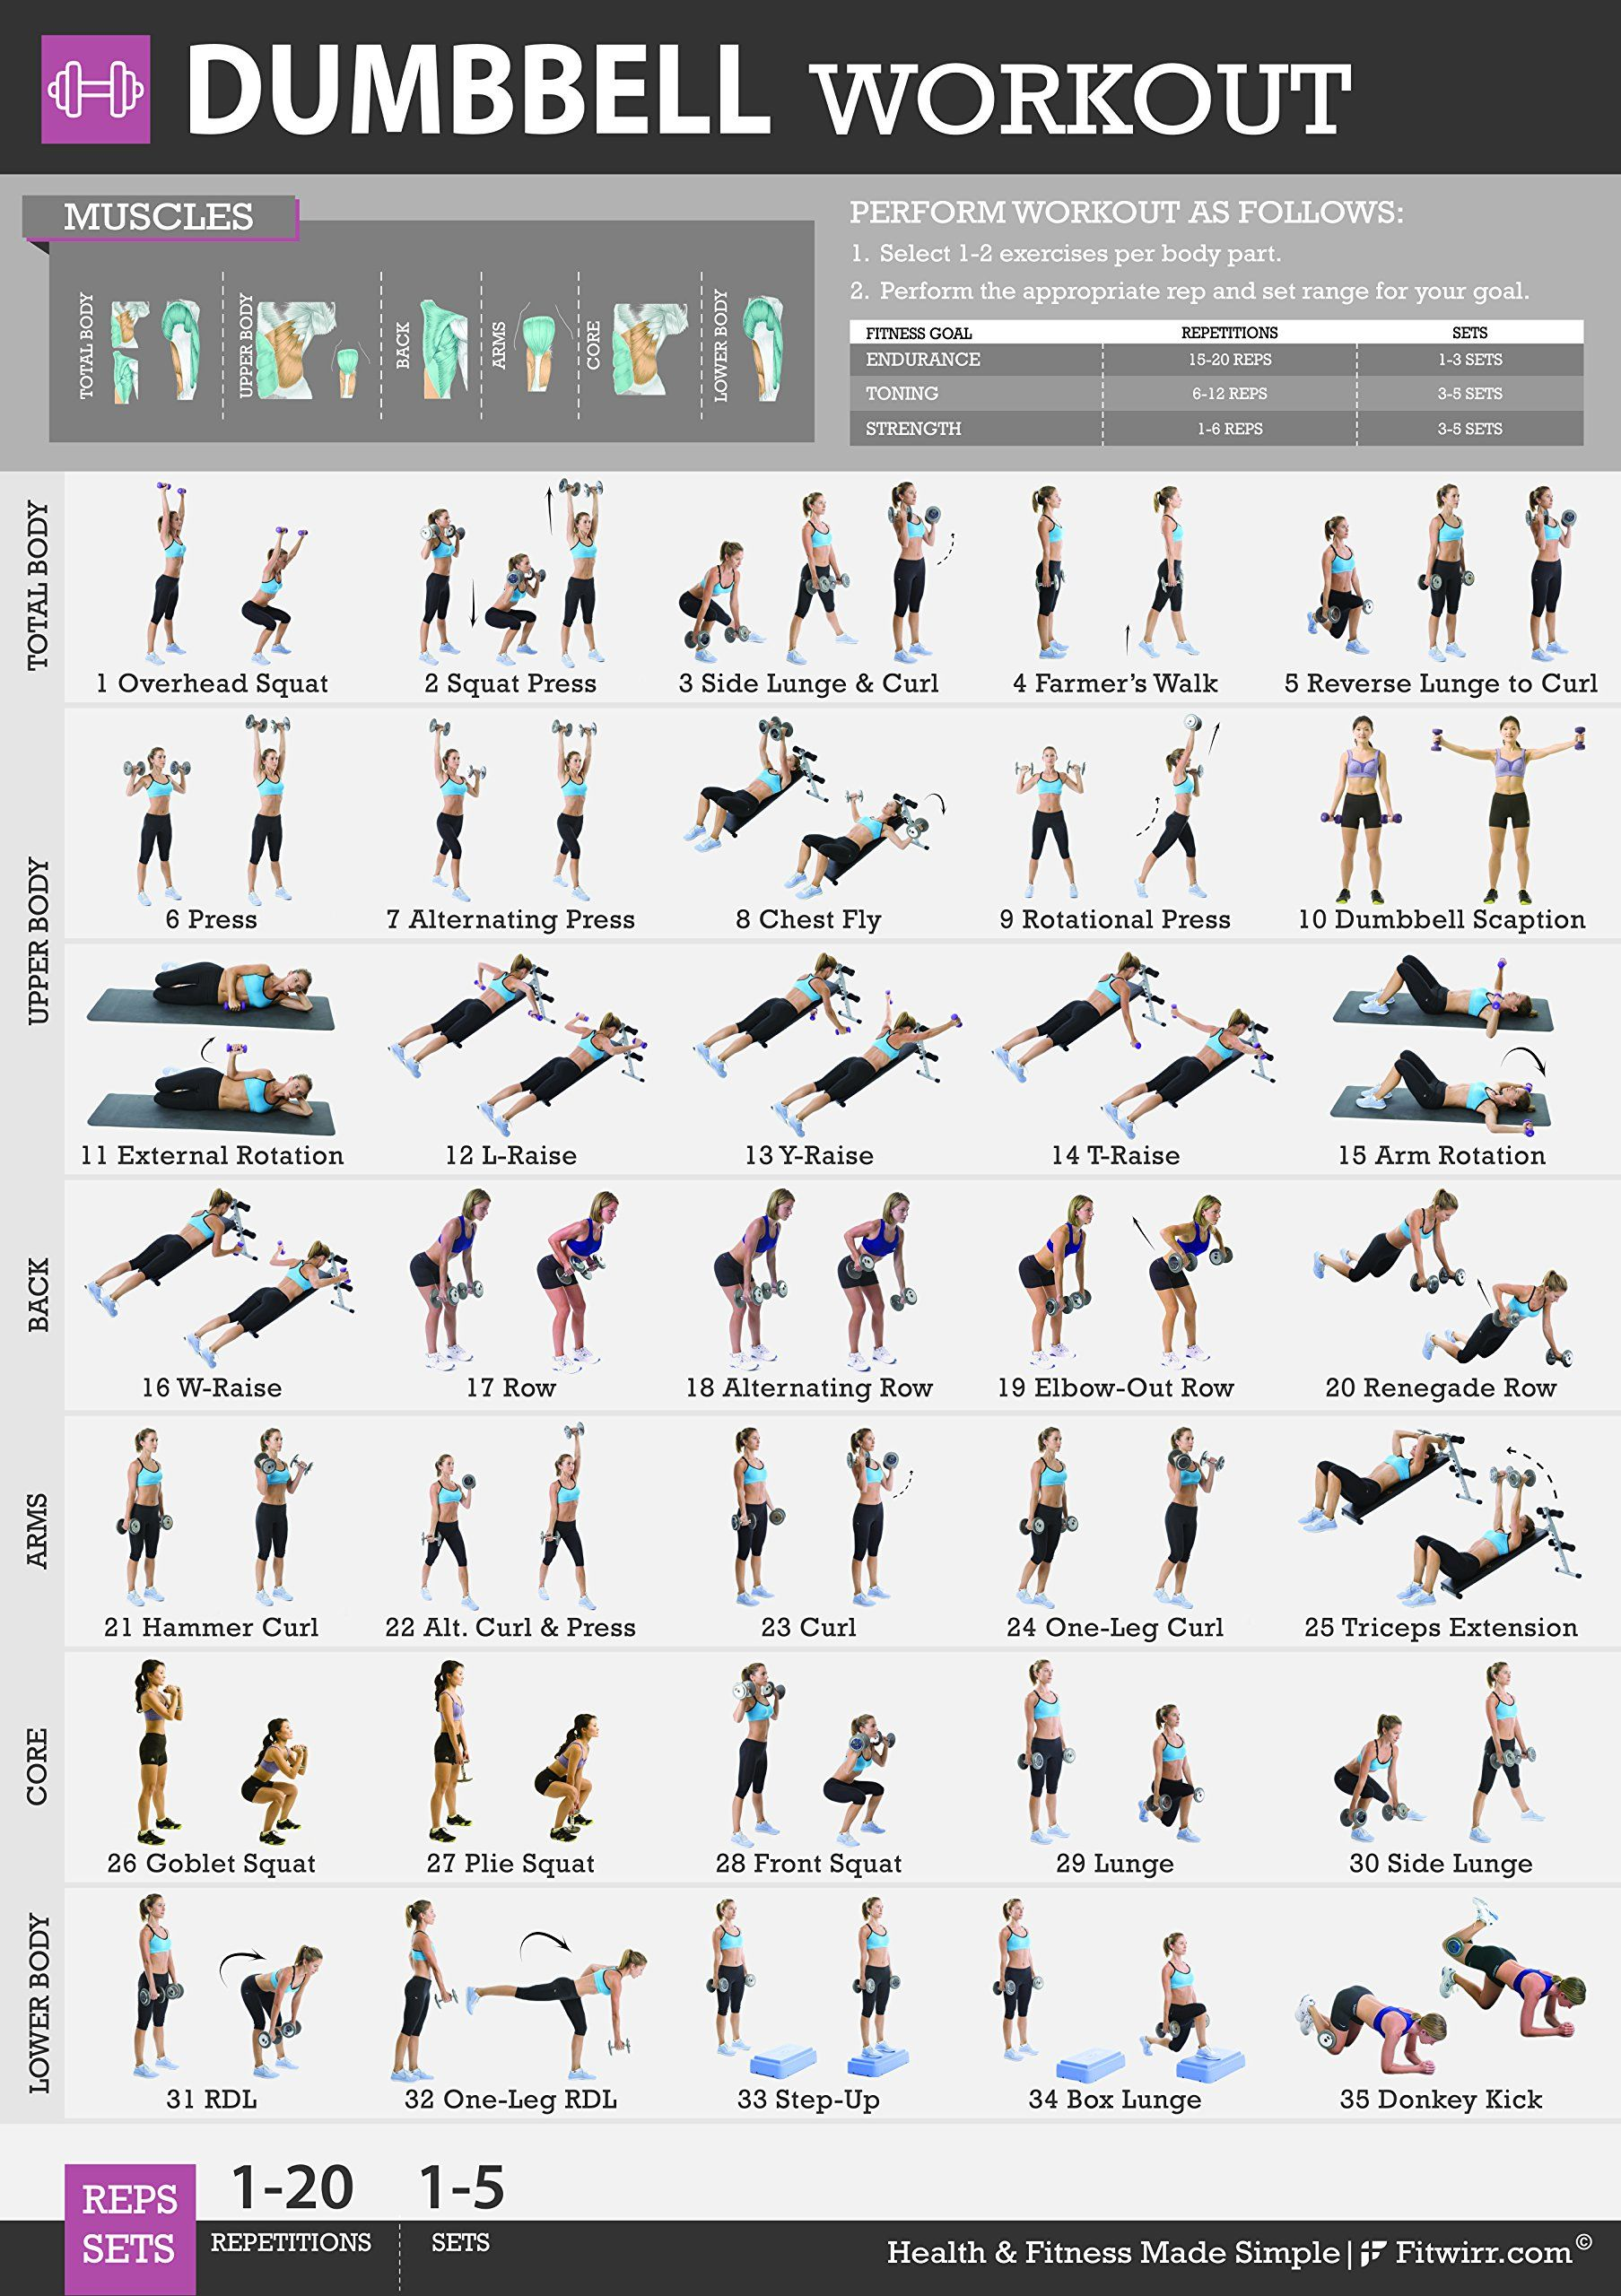 This Workout Poster Features 35 Dumbbell Exercises To Do At Home Lose Weight A Great Selection